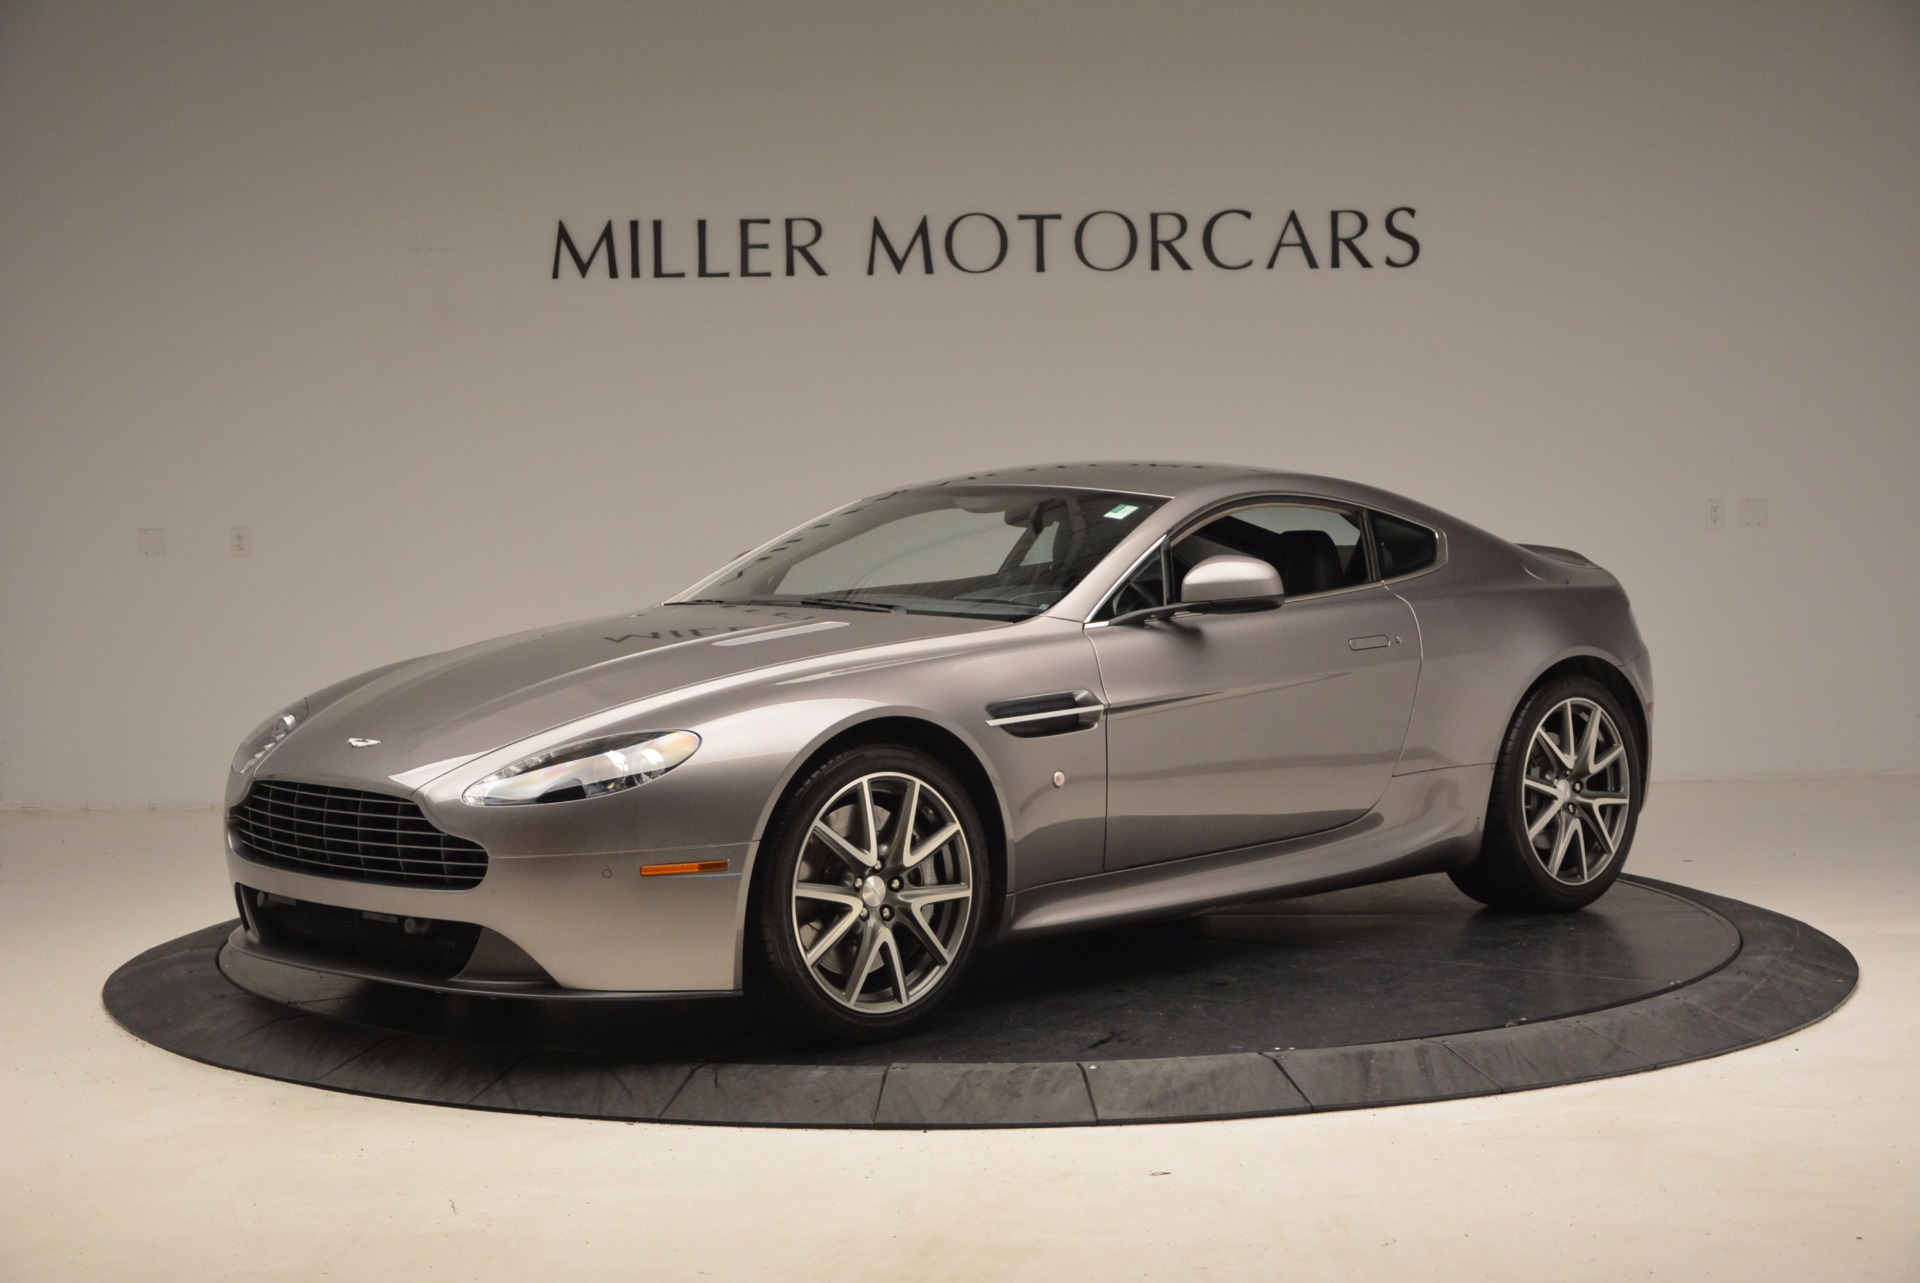 Pre Owned 2012 Aston Martin V8 Vantage For Sale Special Pricing Mclaren Greenwich Stock 7263